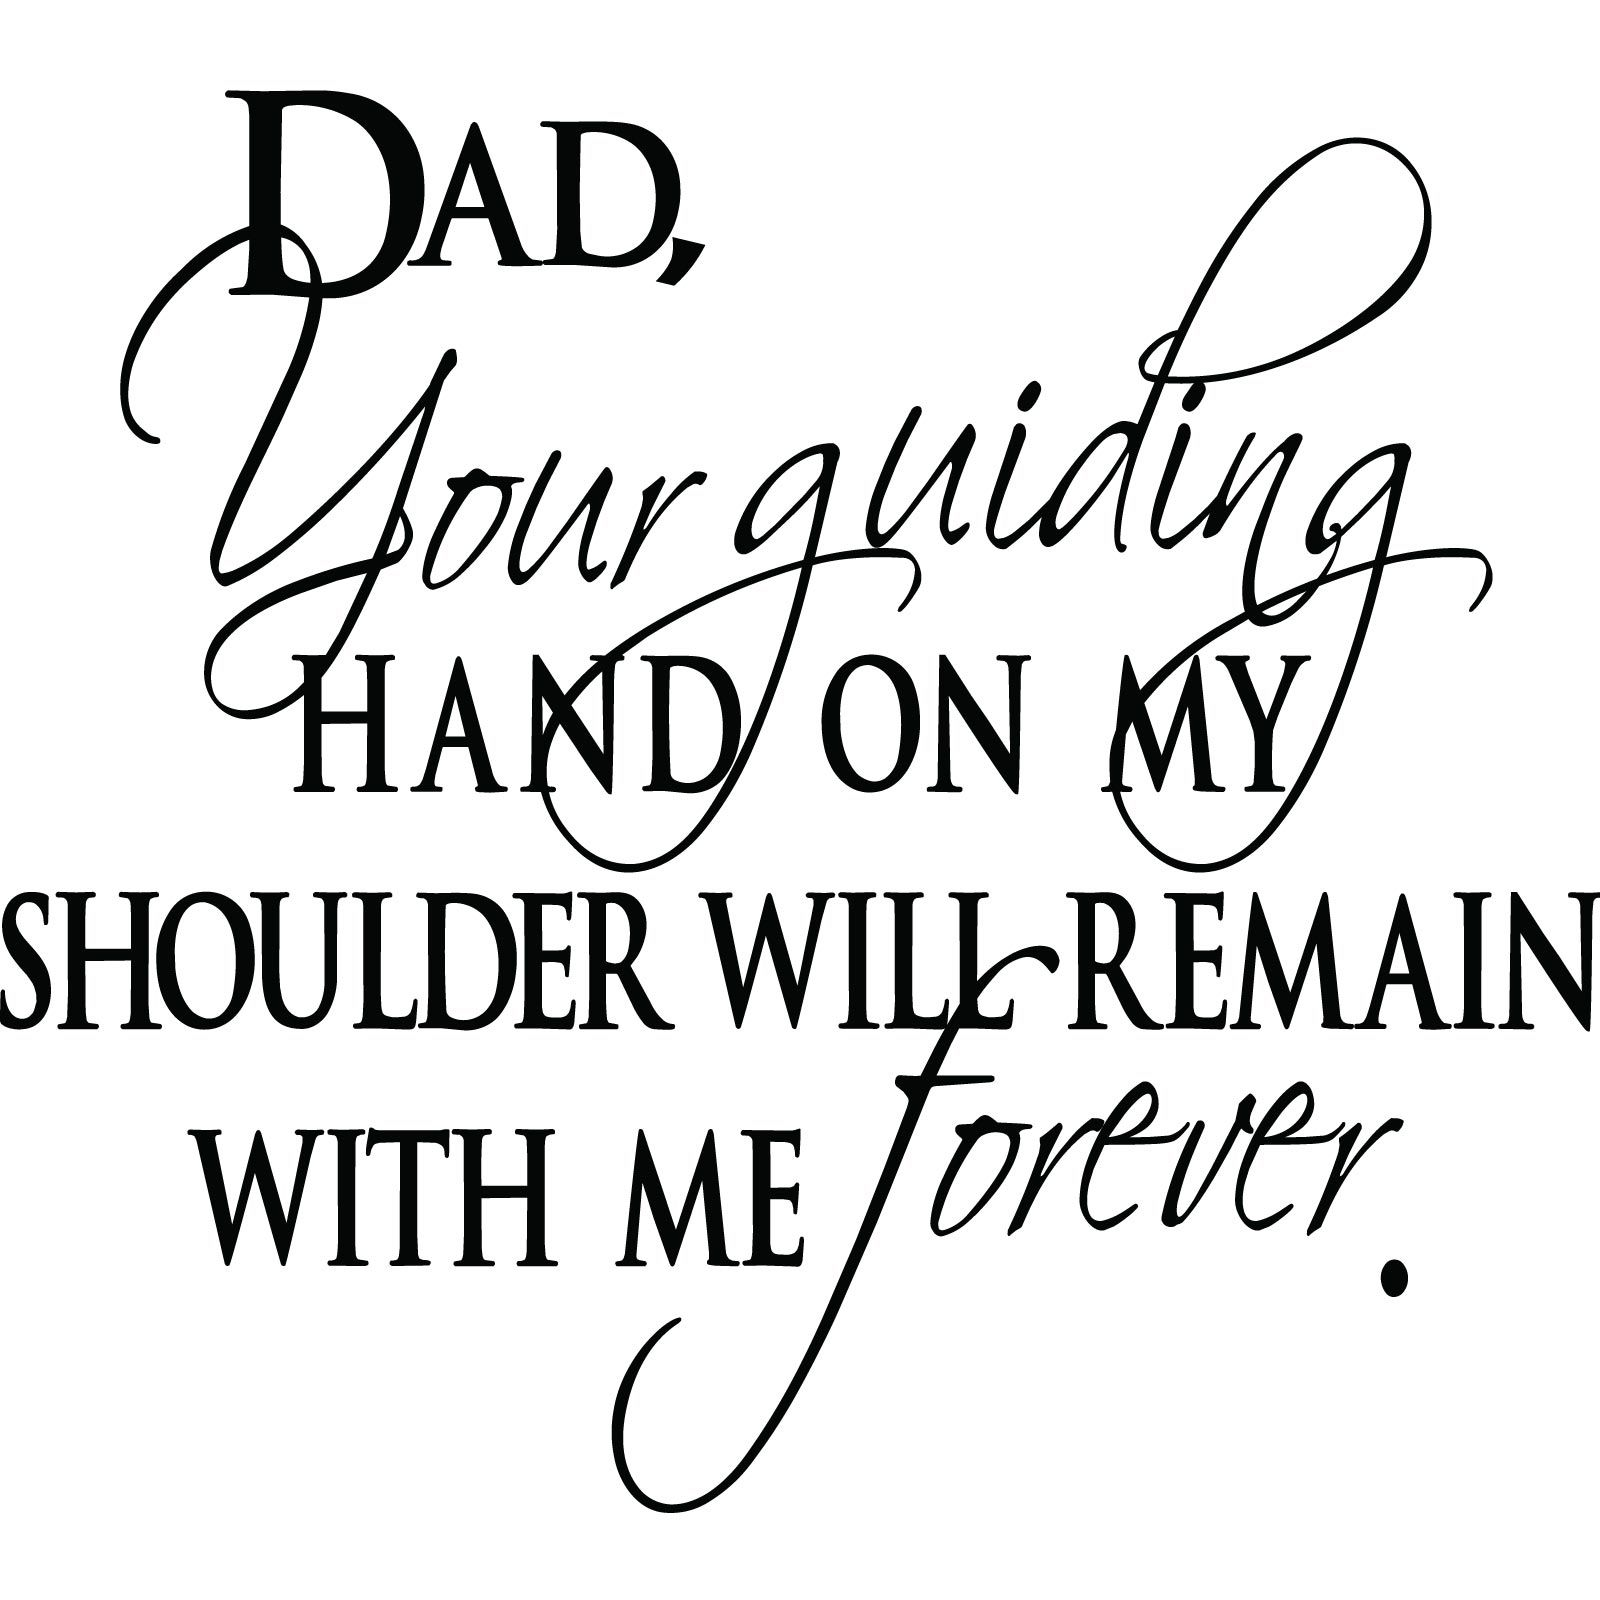 Love Quotes For Him Dad : dads dad quotes best quotes famous quotes awesome quotes love my dad ...